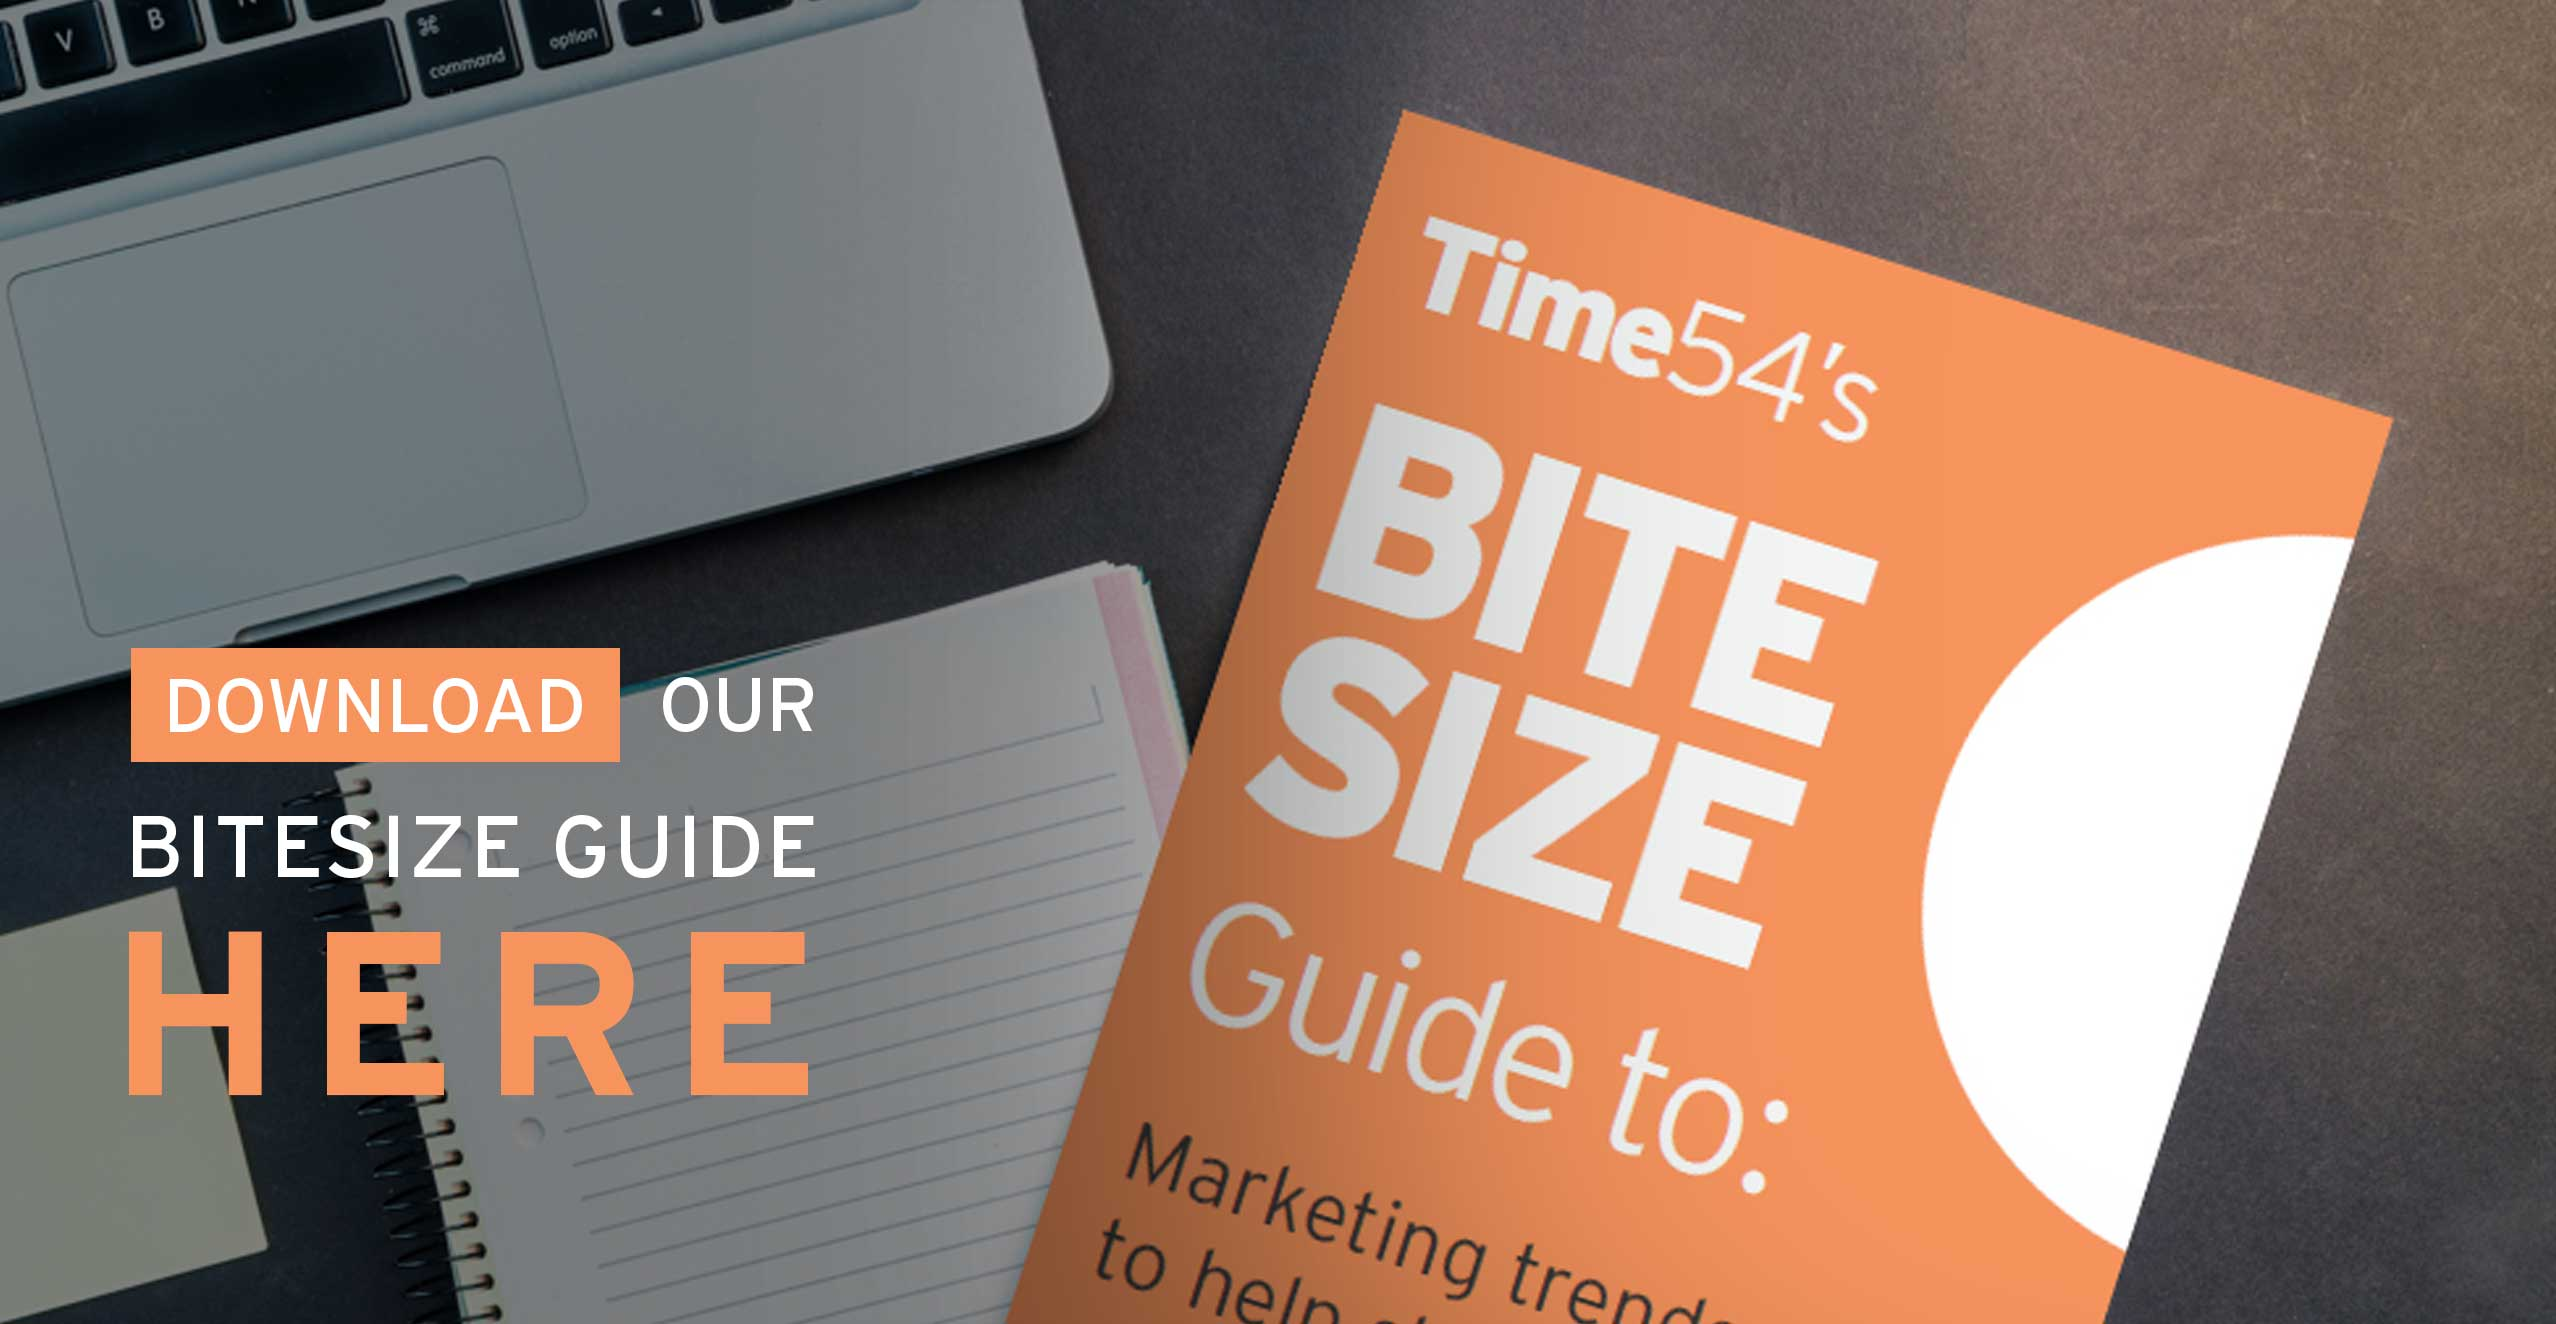 Download our bitesize guide here